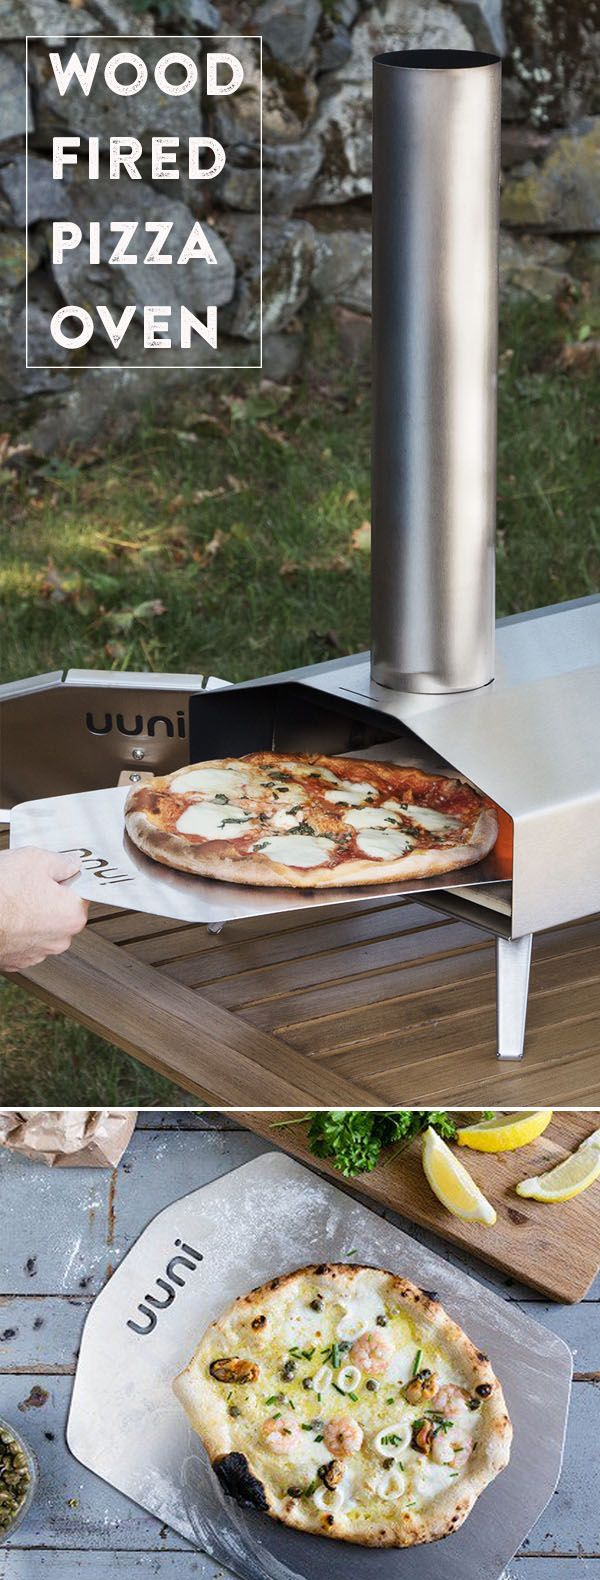 From piping hot pizzas to perfectly charred veggies and meats—this sleek oven will make it easy to wood fire like a professional. Make your own wood fired pizzas at home with this pizza oven.